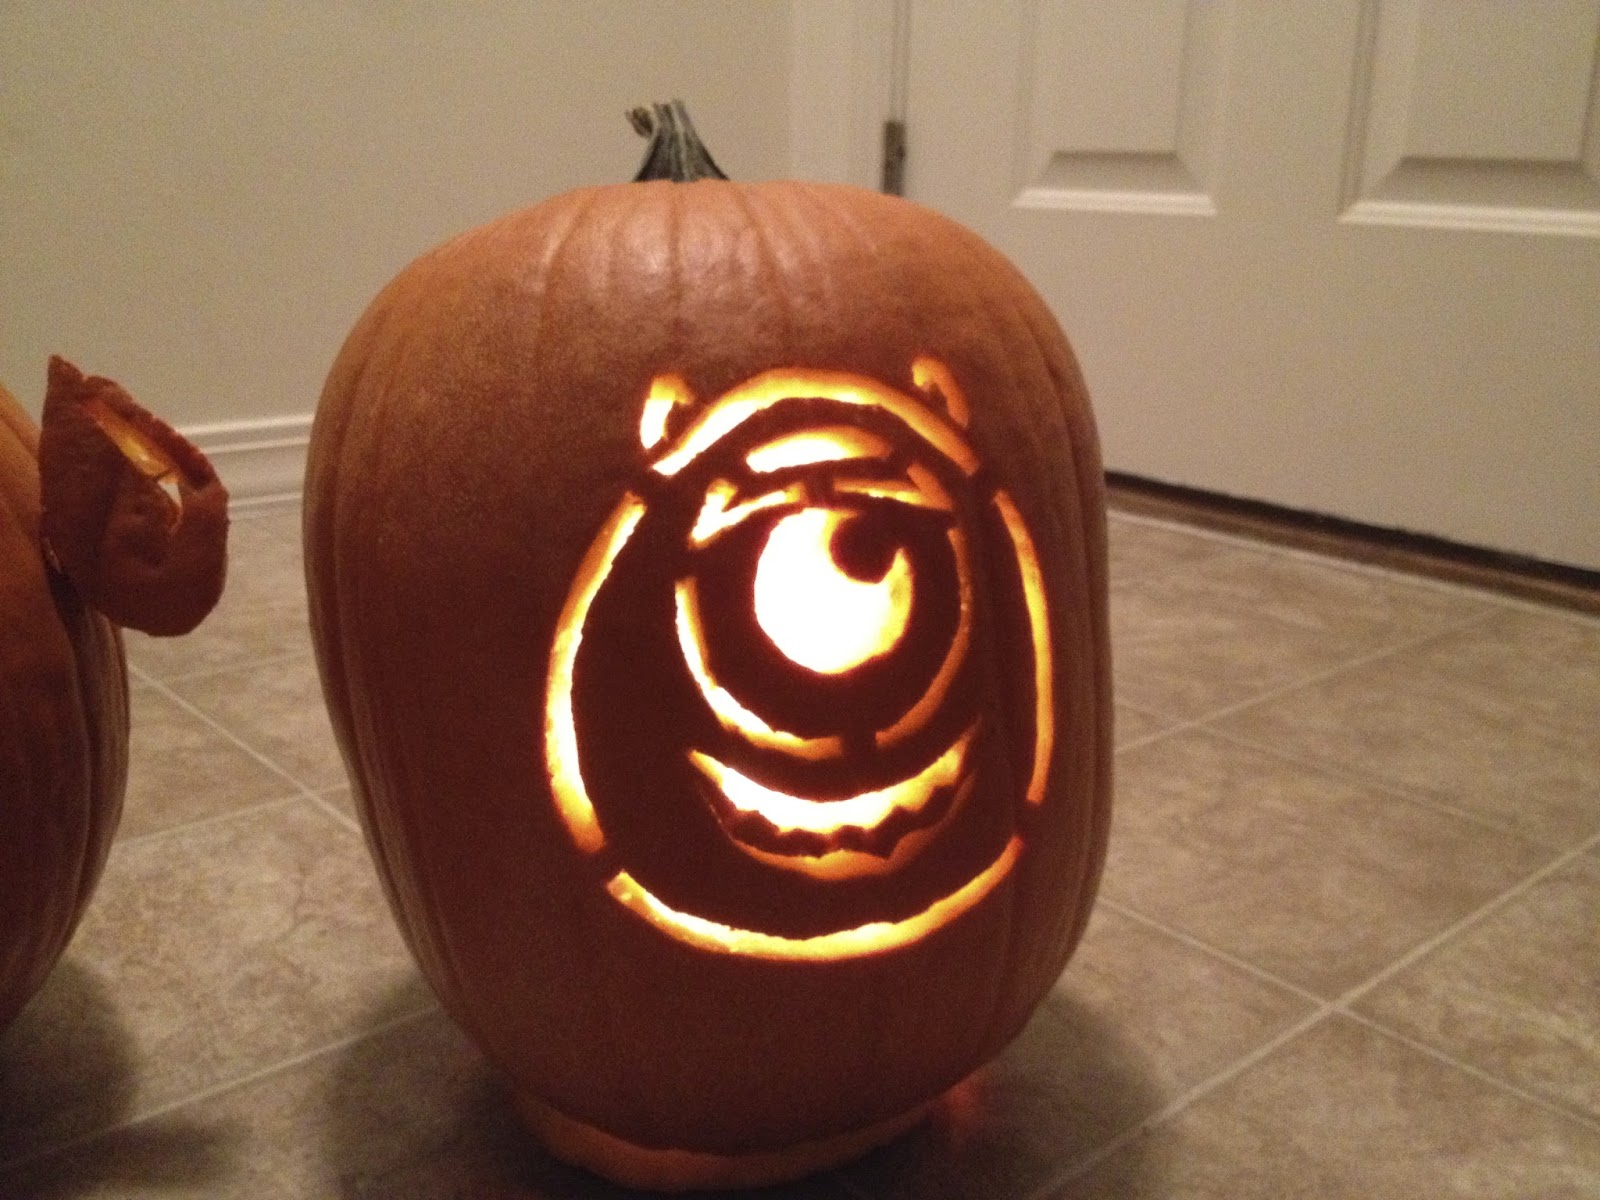 Dan the pixar fan events pixar themed pumpkin carving for Mike wazowski pumpkin template